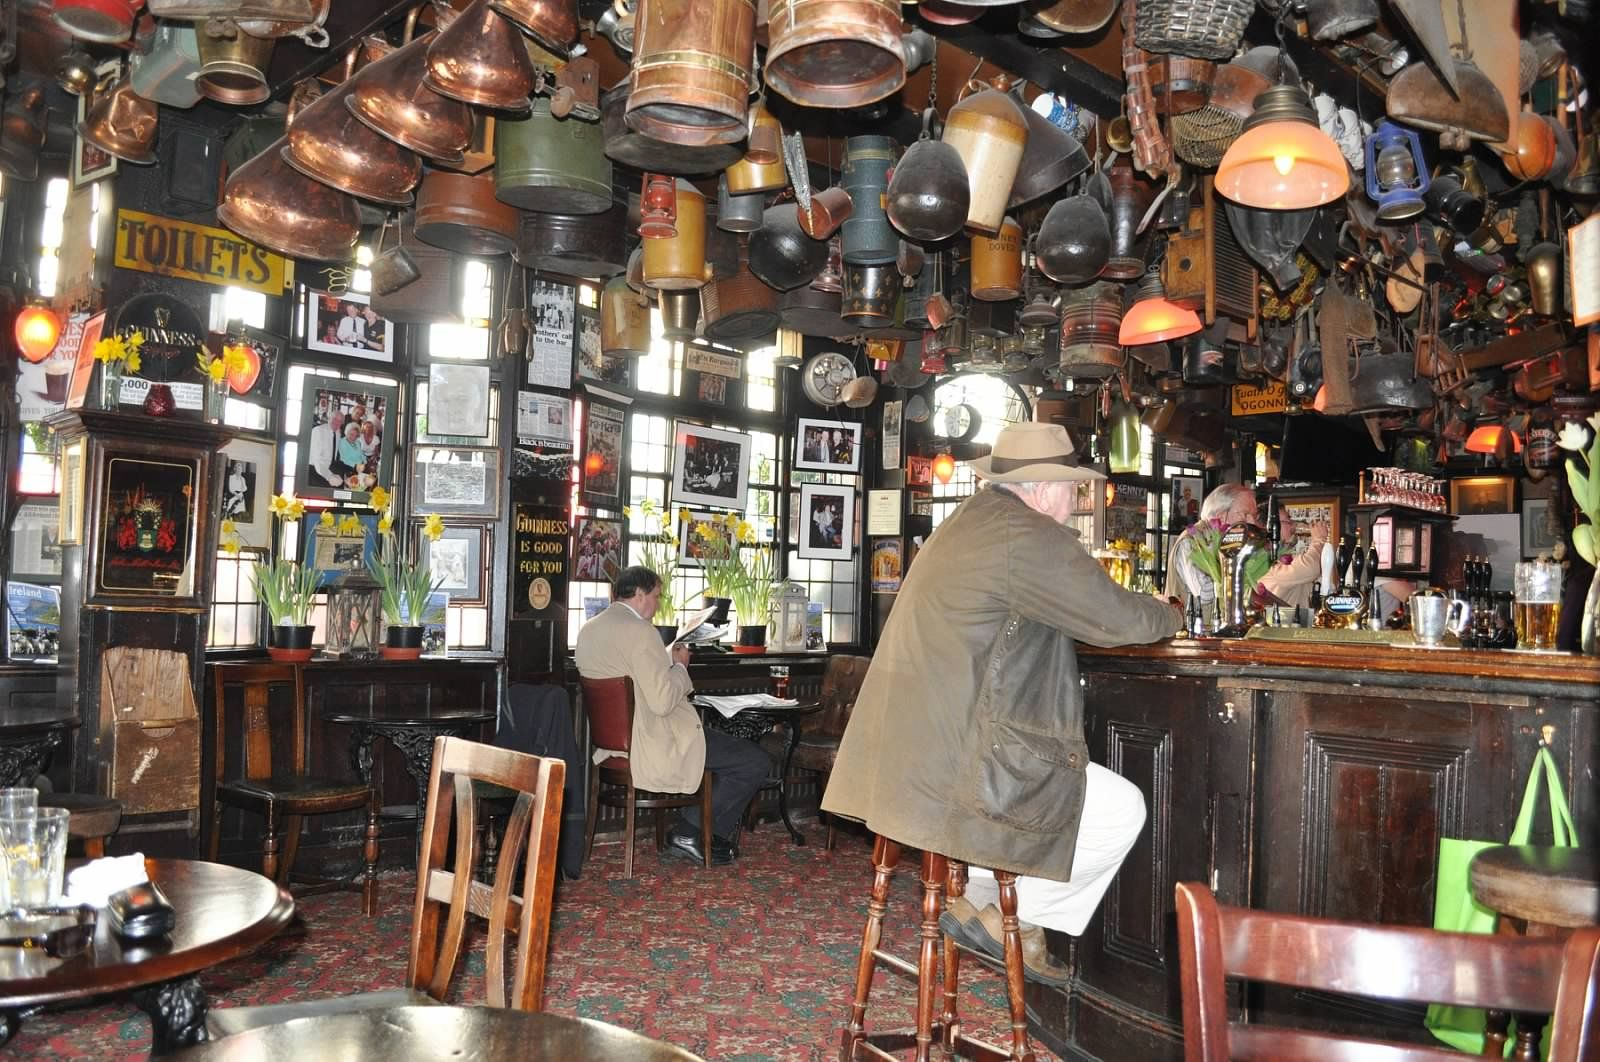 British Pub Wallpaper Google Search Home Decor HD Wallpapers Download Free Images Wallpaper [1000image.com]